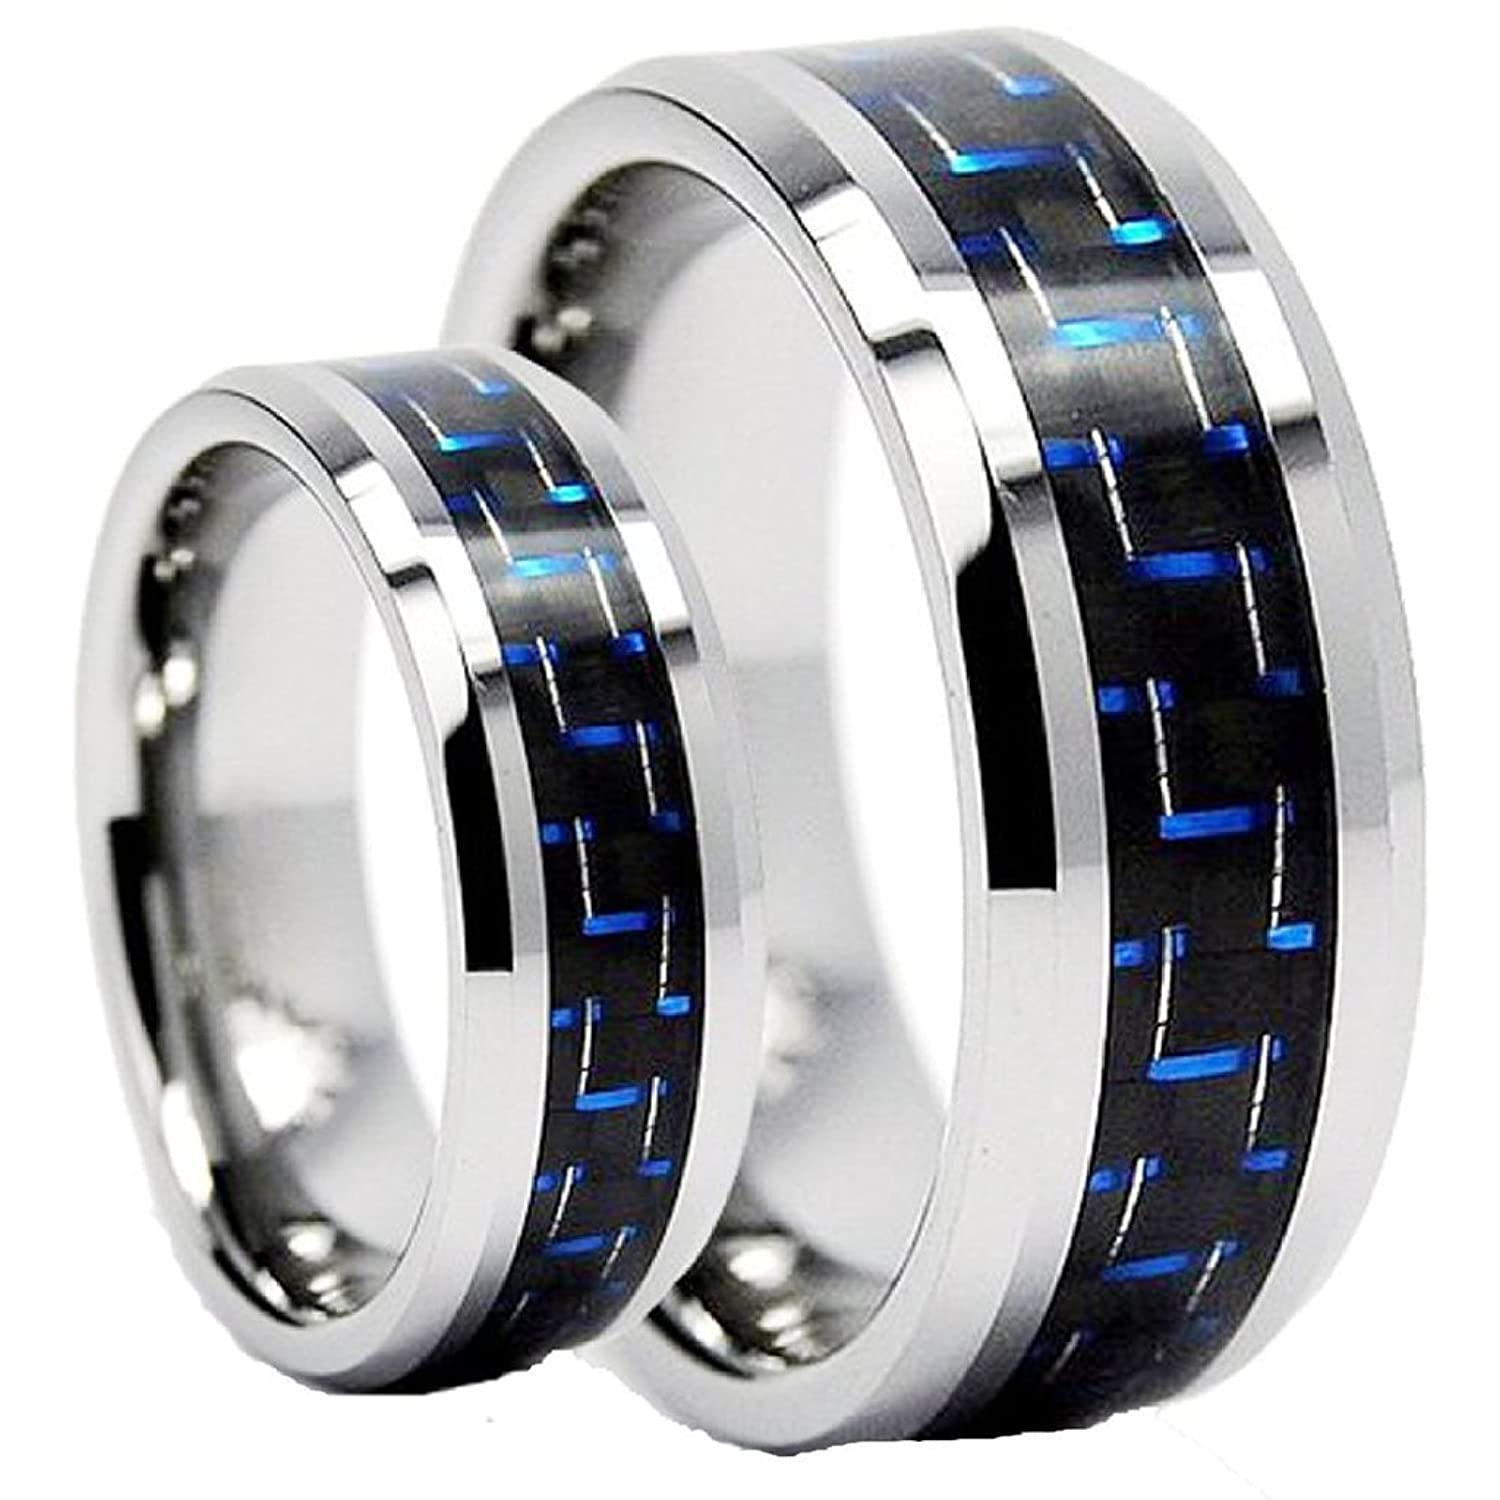 Perfect Amazon.com: Men U0026 Women 8MM/6MM Tungsten Carbide Wedding Band Ring Set With  Blue Carbon Fiber Inlay: Jewelry Great Ideas